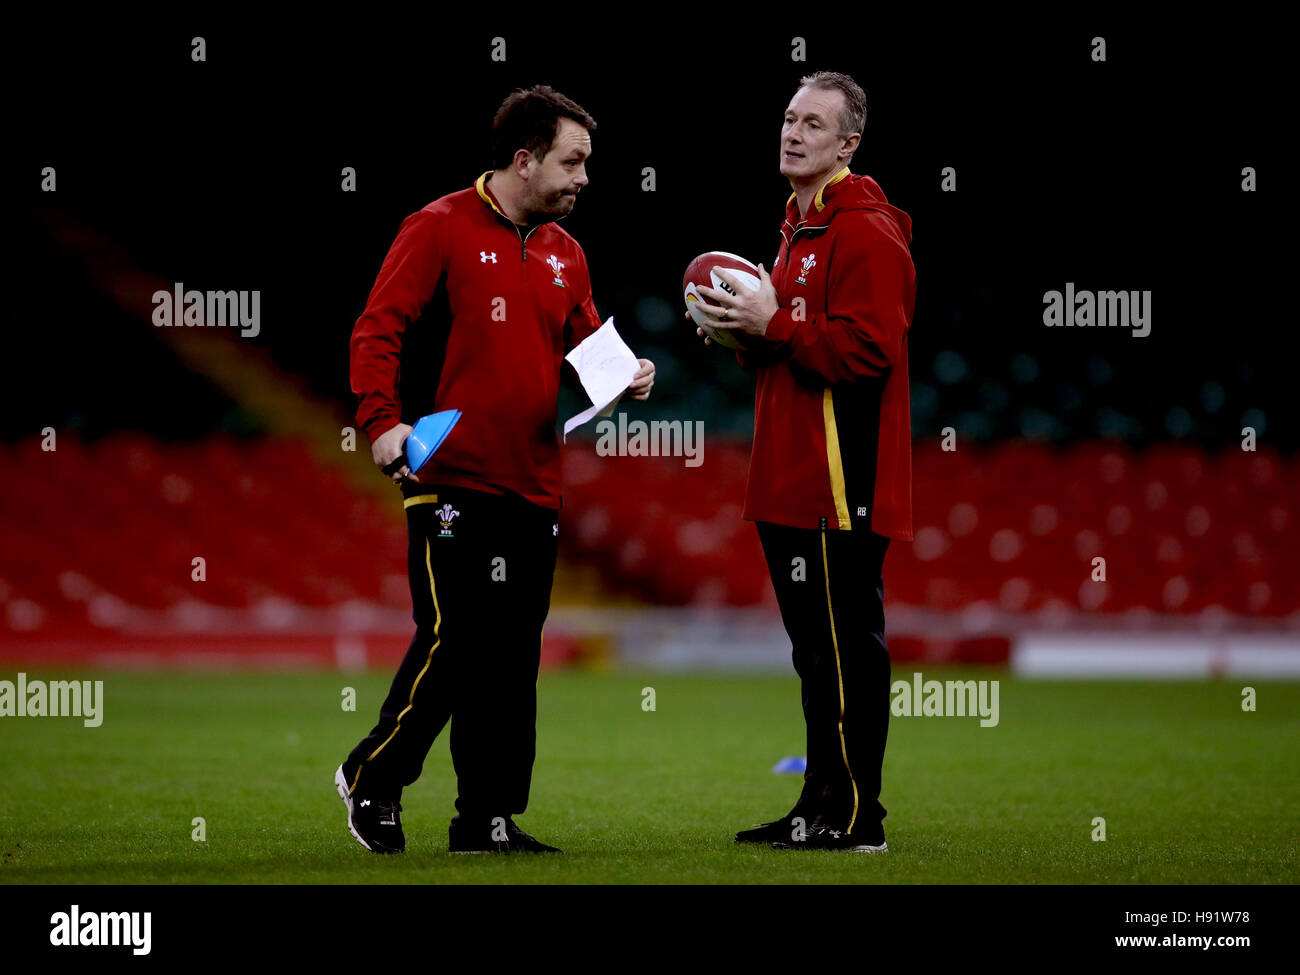 Wales coach Rob Howley talks with coach Matt Sherratt (left) during training session at the Principality Stadium - Stock Image